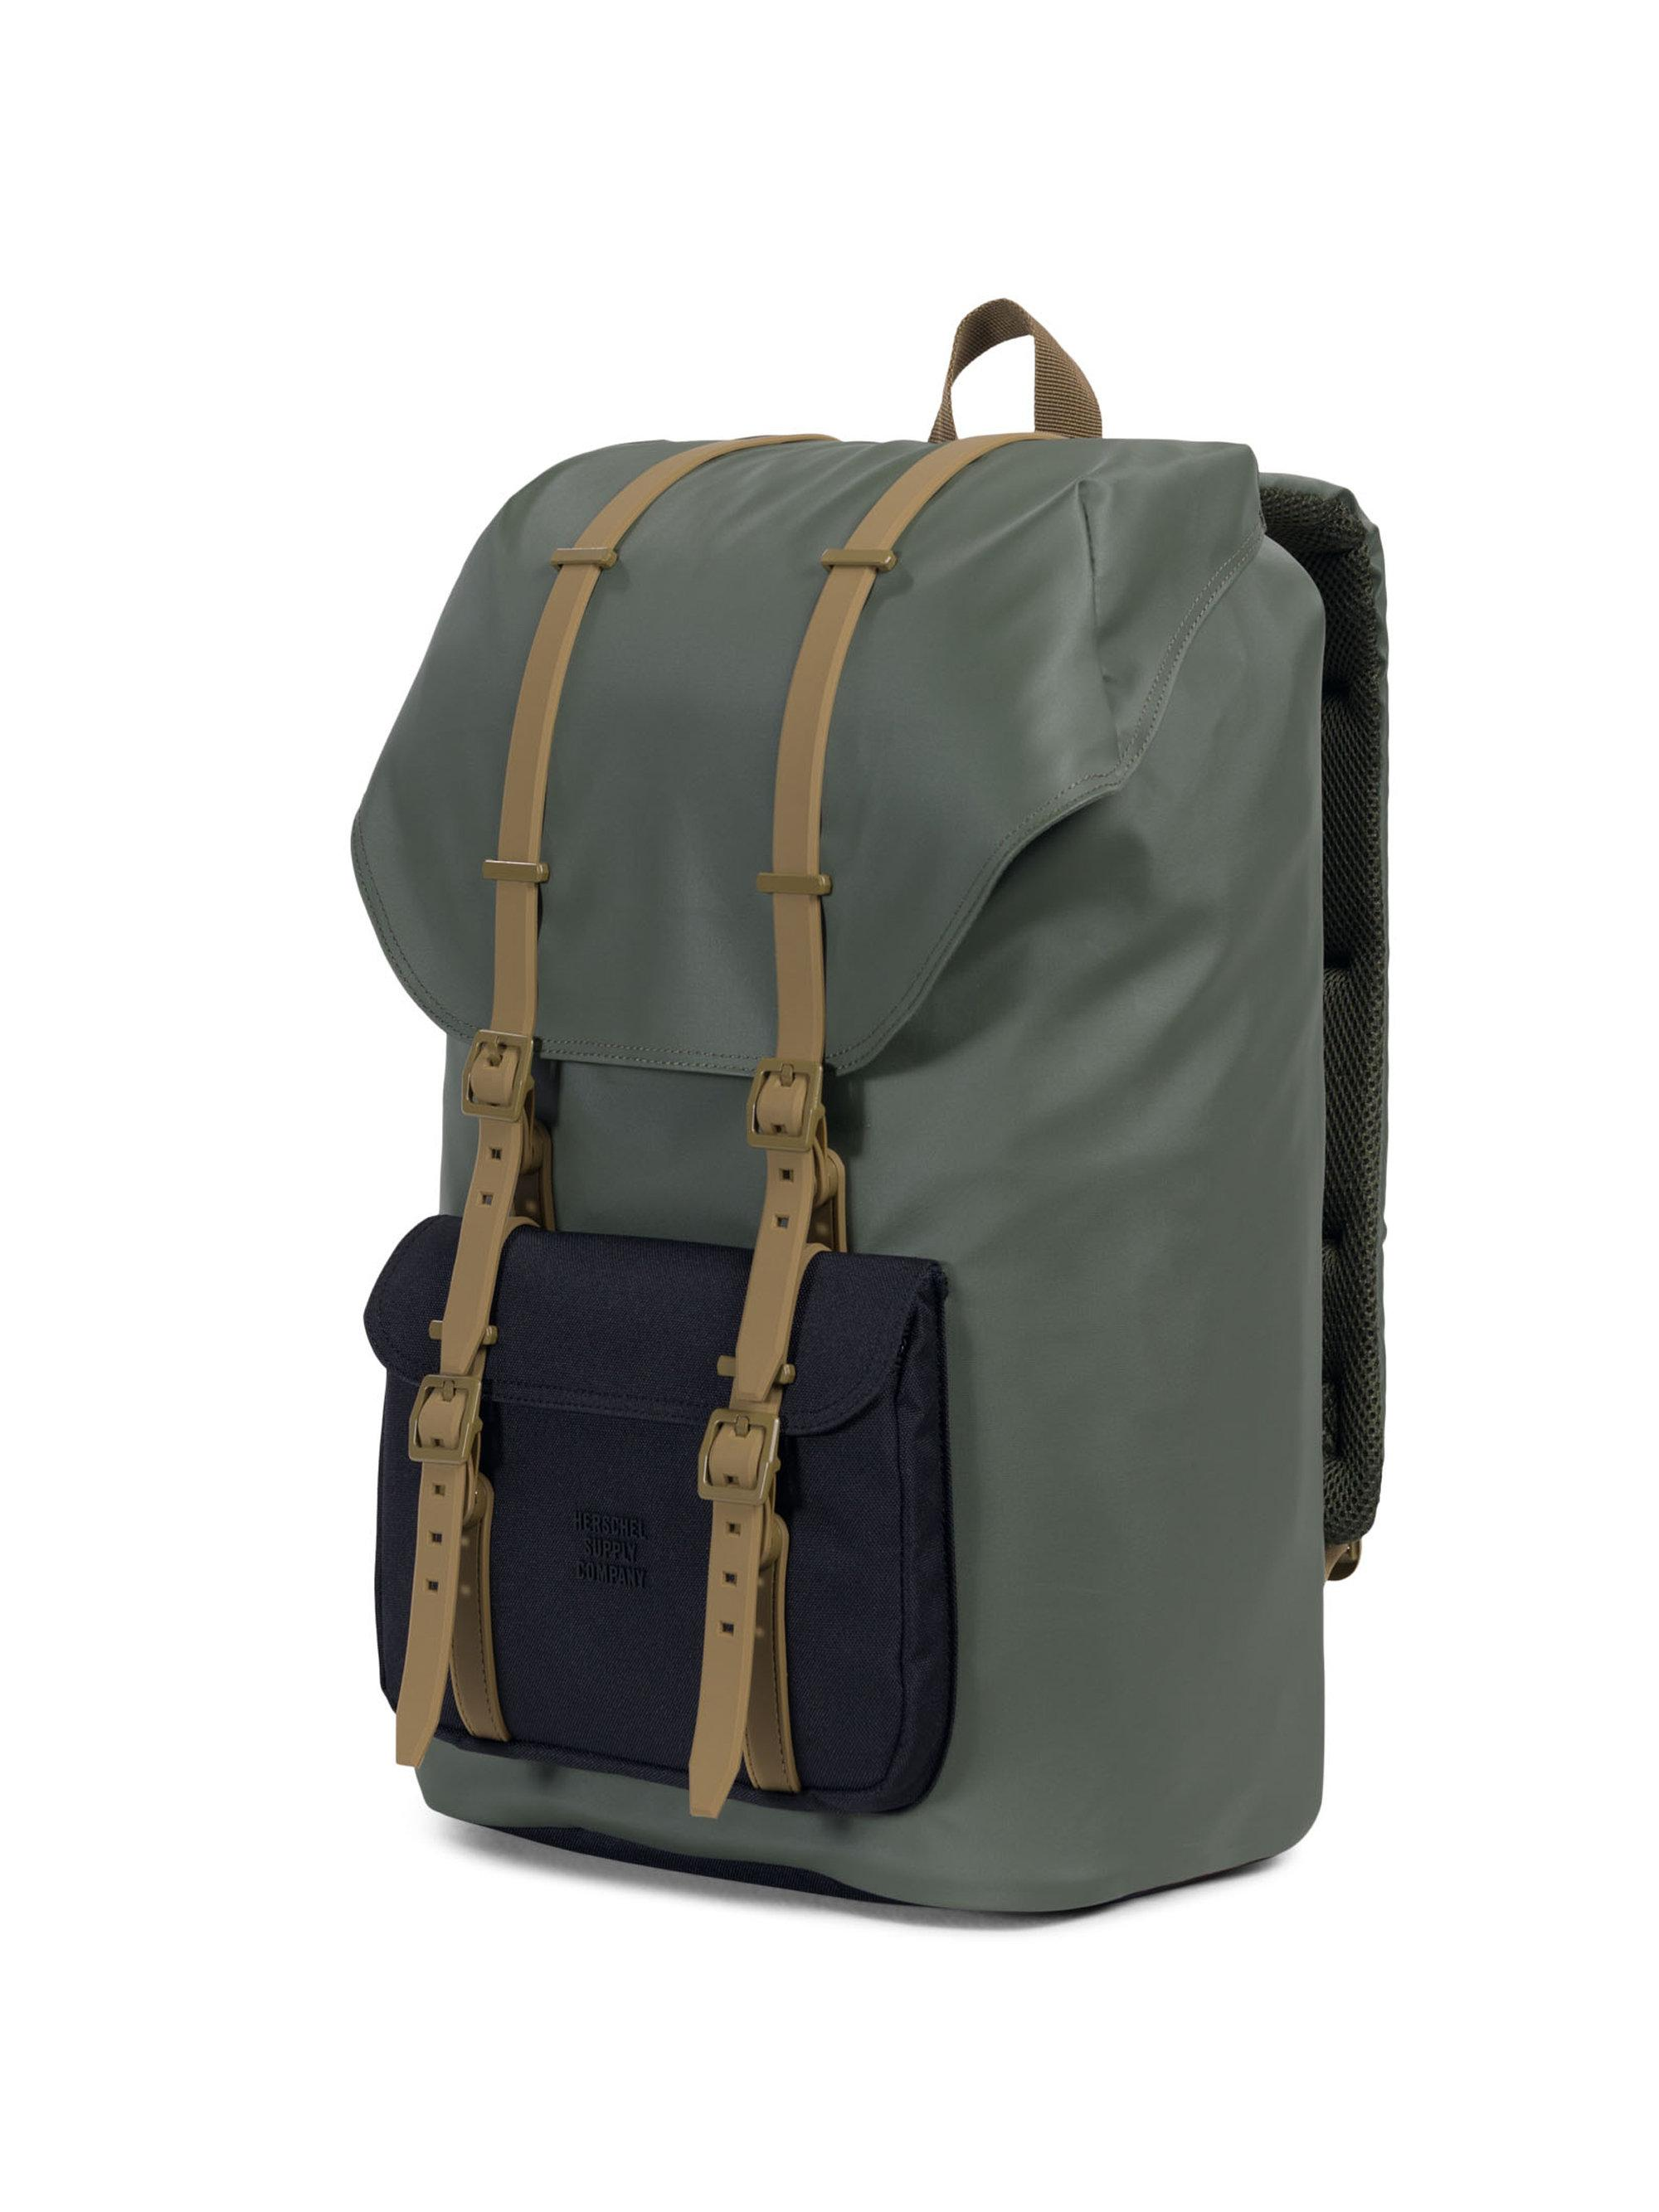 9c52331cacfb Lyst Herschel Supply Co Little America Backpack In Gray For Men